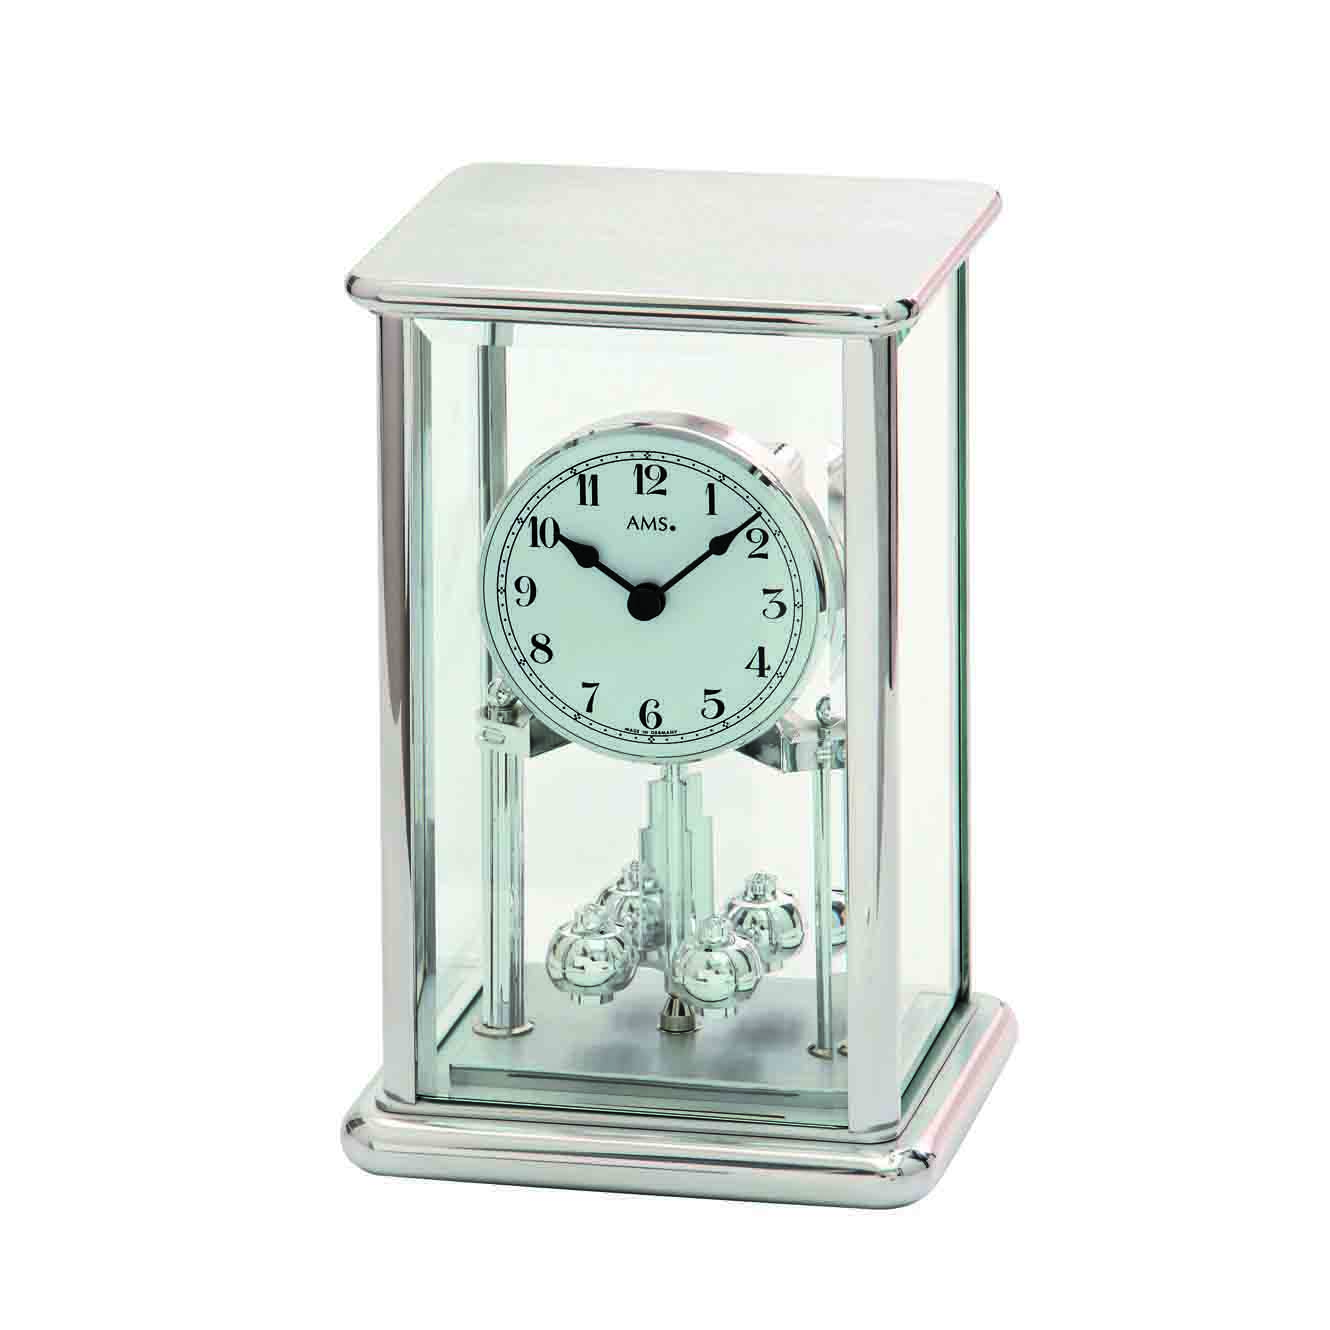 AMS 1210 Anniversary Table Clock